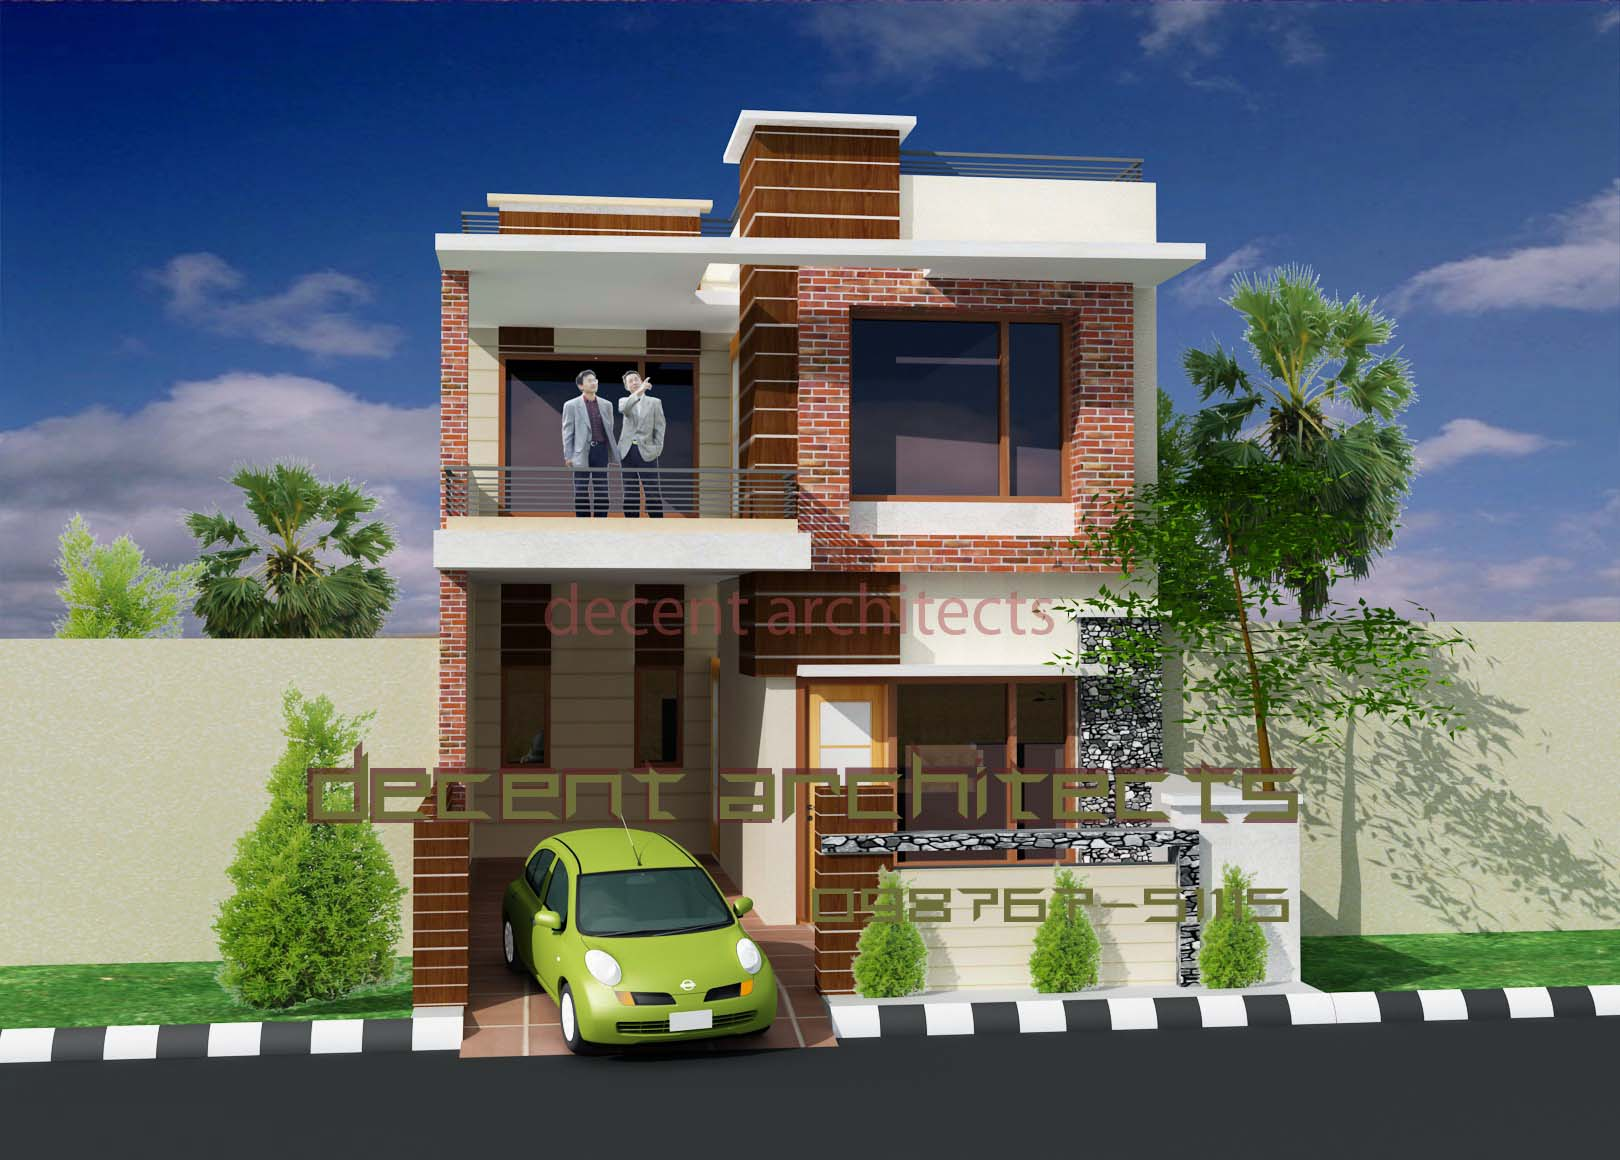 House Design Exterior Interior Exterior Plan Decent Small House